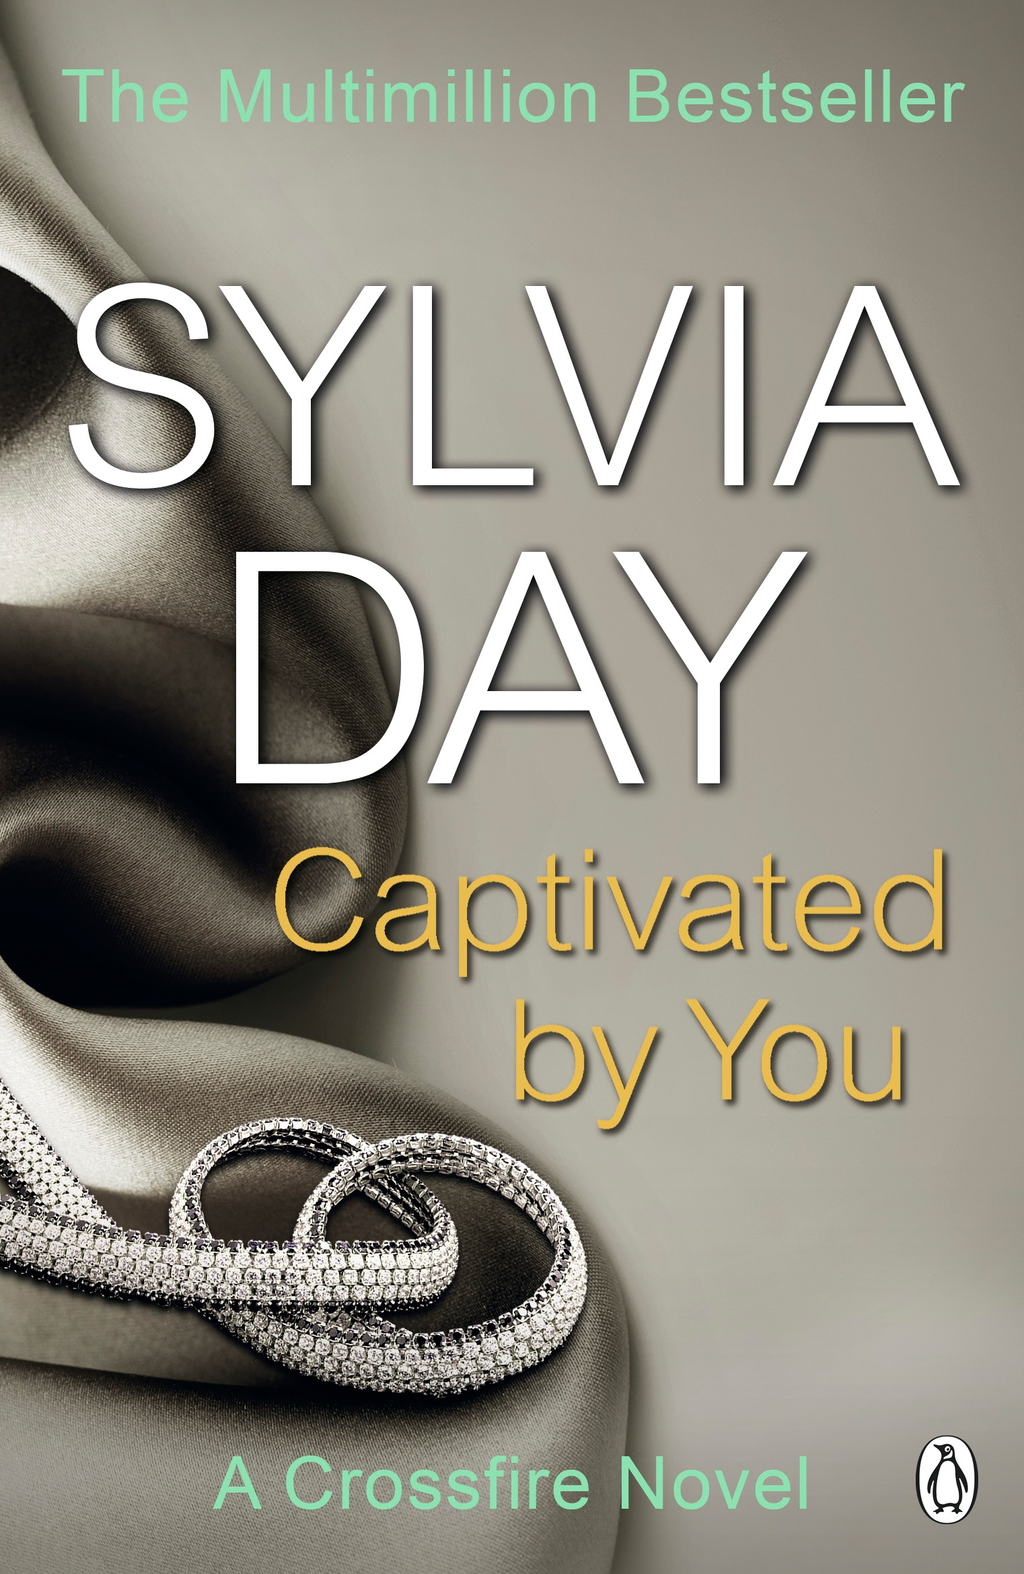 Captivated by You A Crossfire Novel